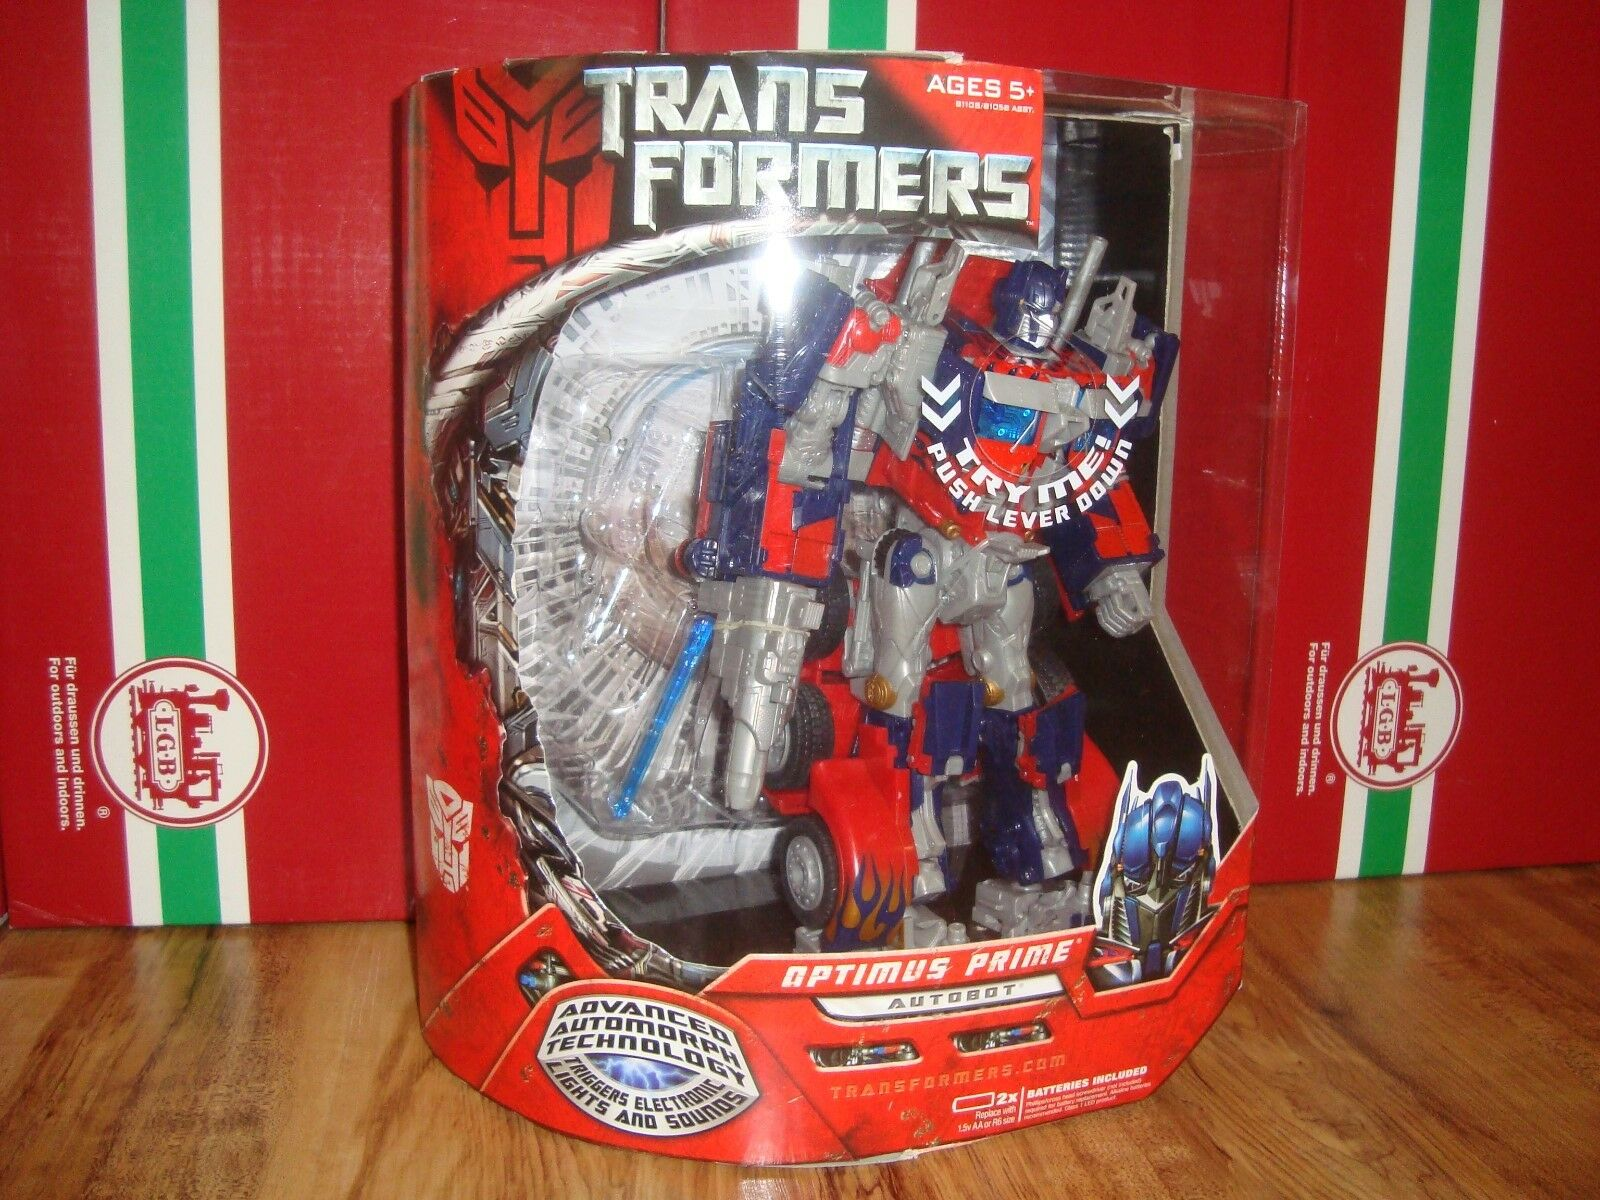 HASBRO TRANSFORMERS MOVIE 2007 OPTIMUS PRIME MINT IN SEALED BOX